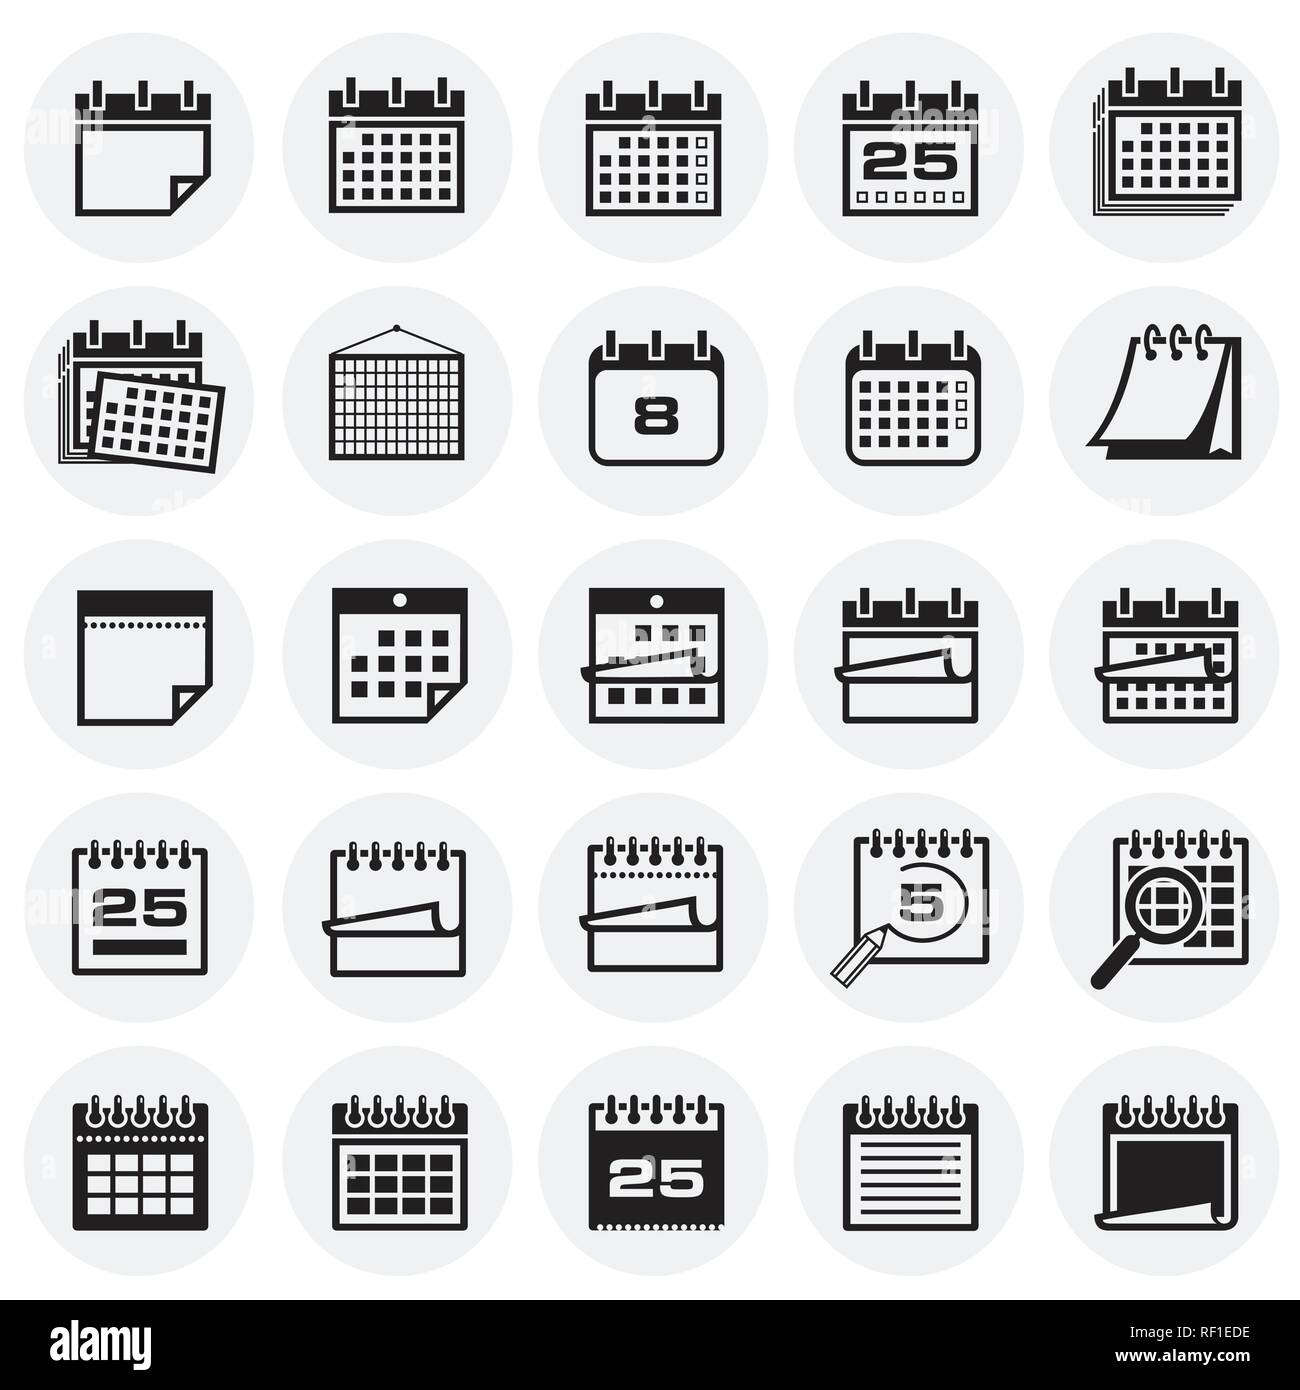 Calendar icon set on circles background for graphic and web